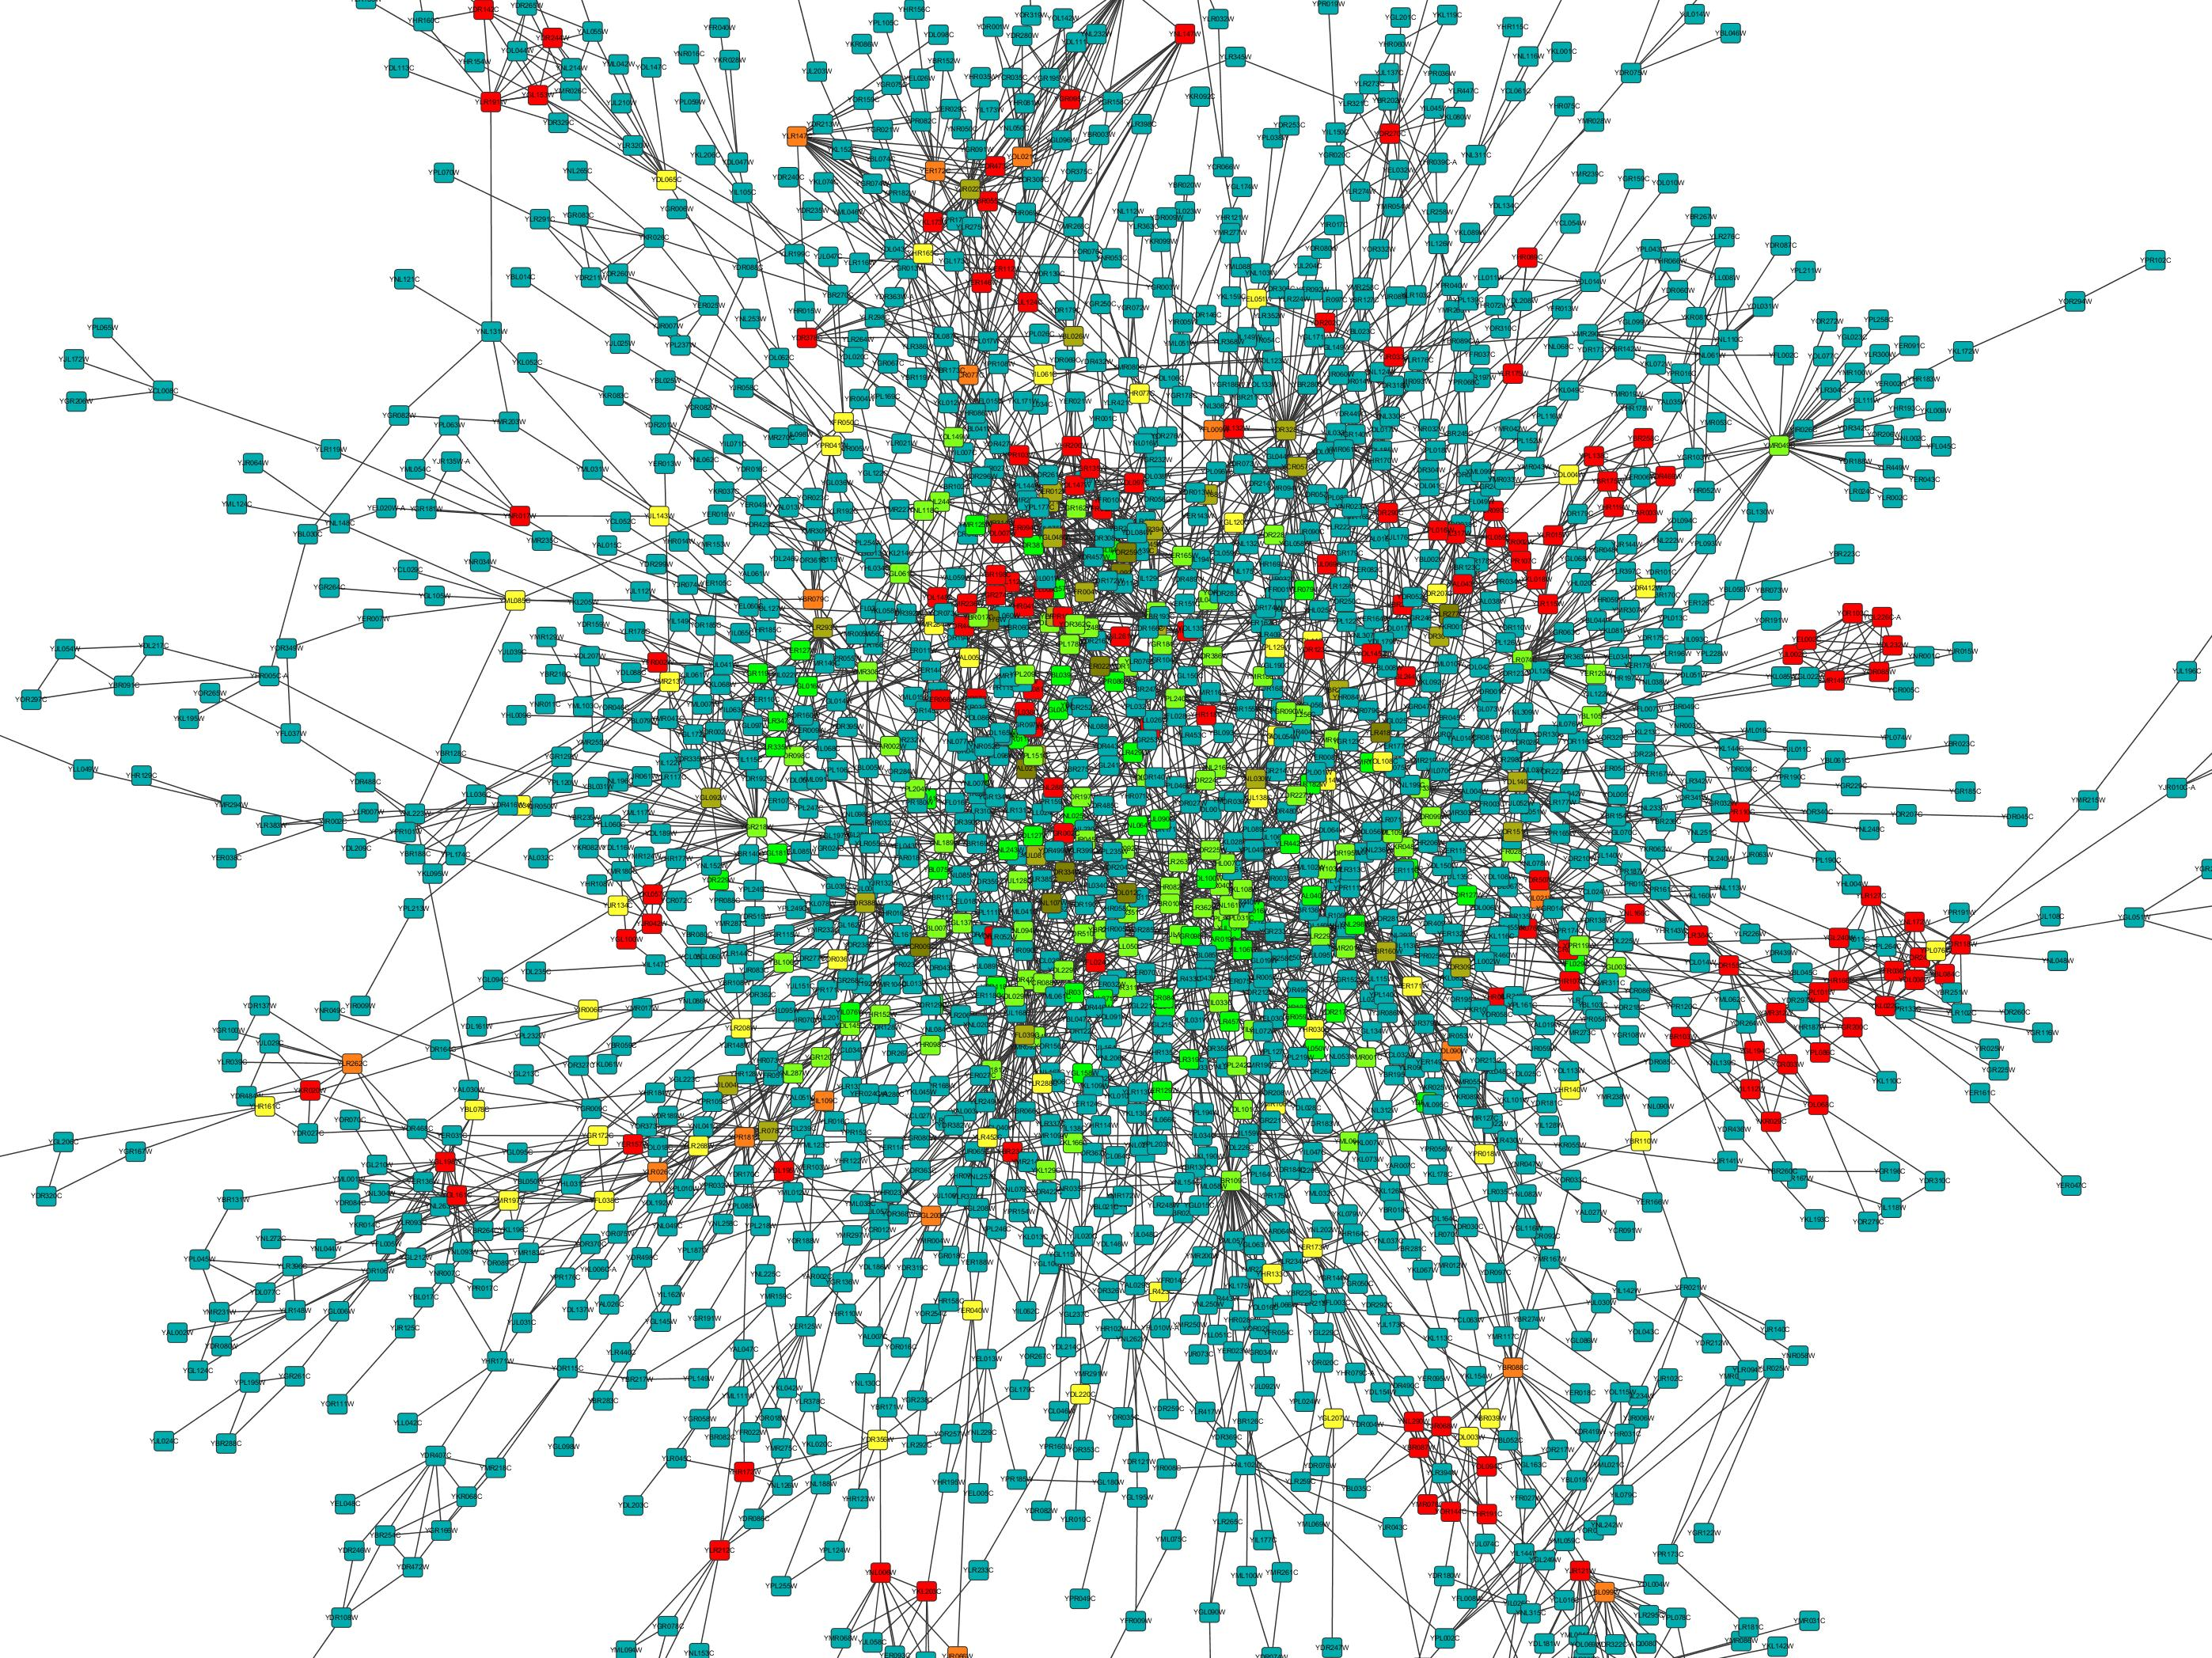 dr tech jon dorbolo apps cytoscape org media cytonca screenshots nc%20bc%20cc%2010%25 jpg